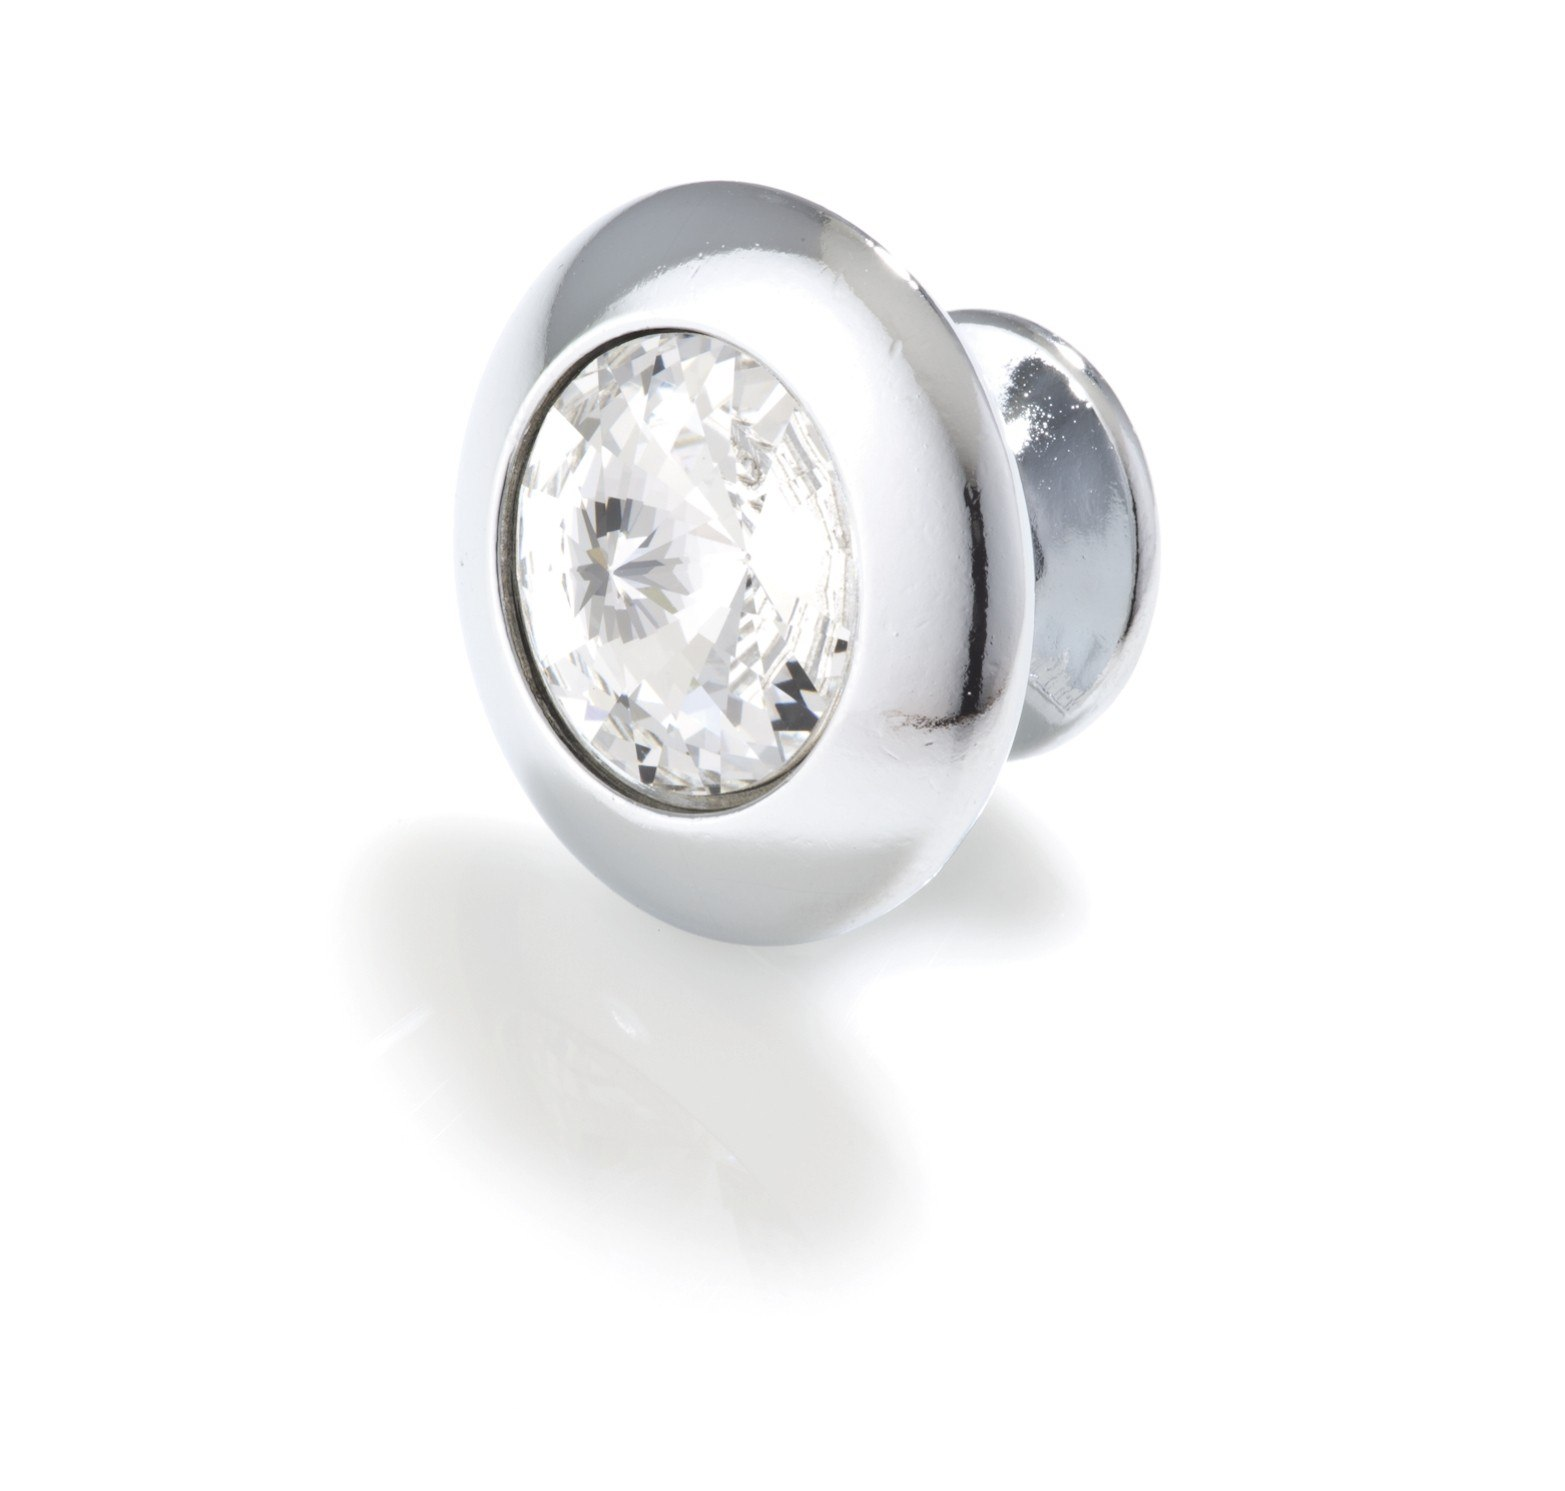 Topex 10779B40 Round Crystal Knob 1 3/16 Inches Bright Chrome